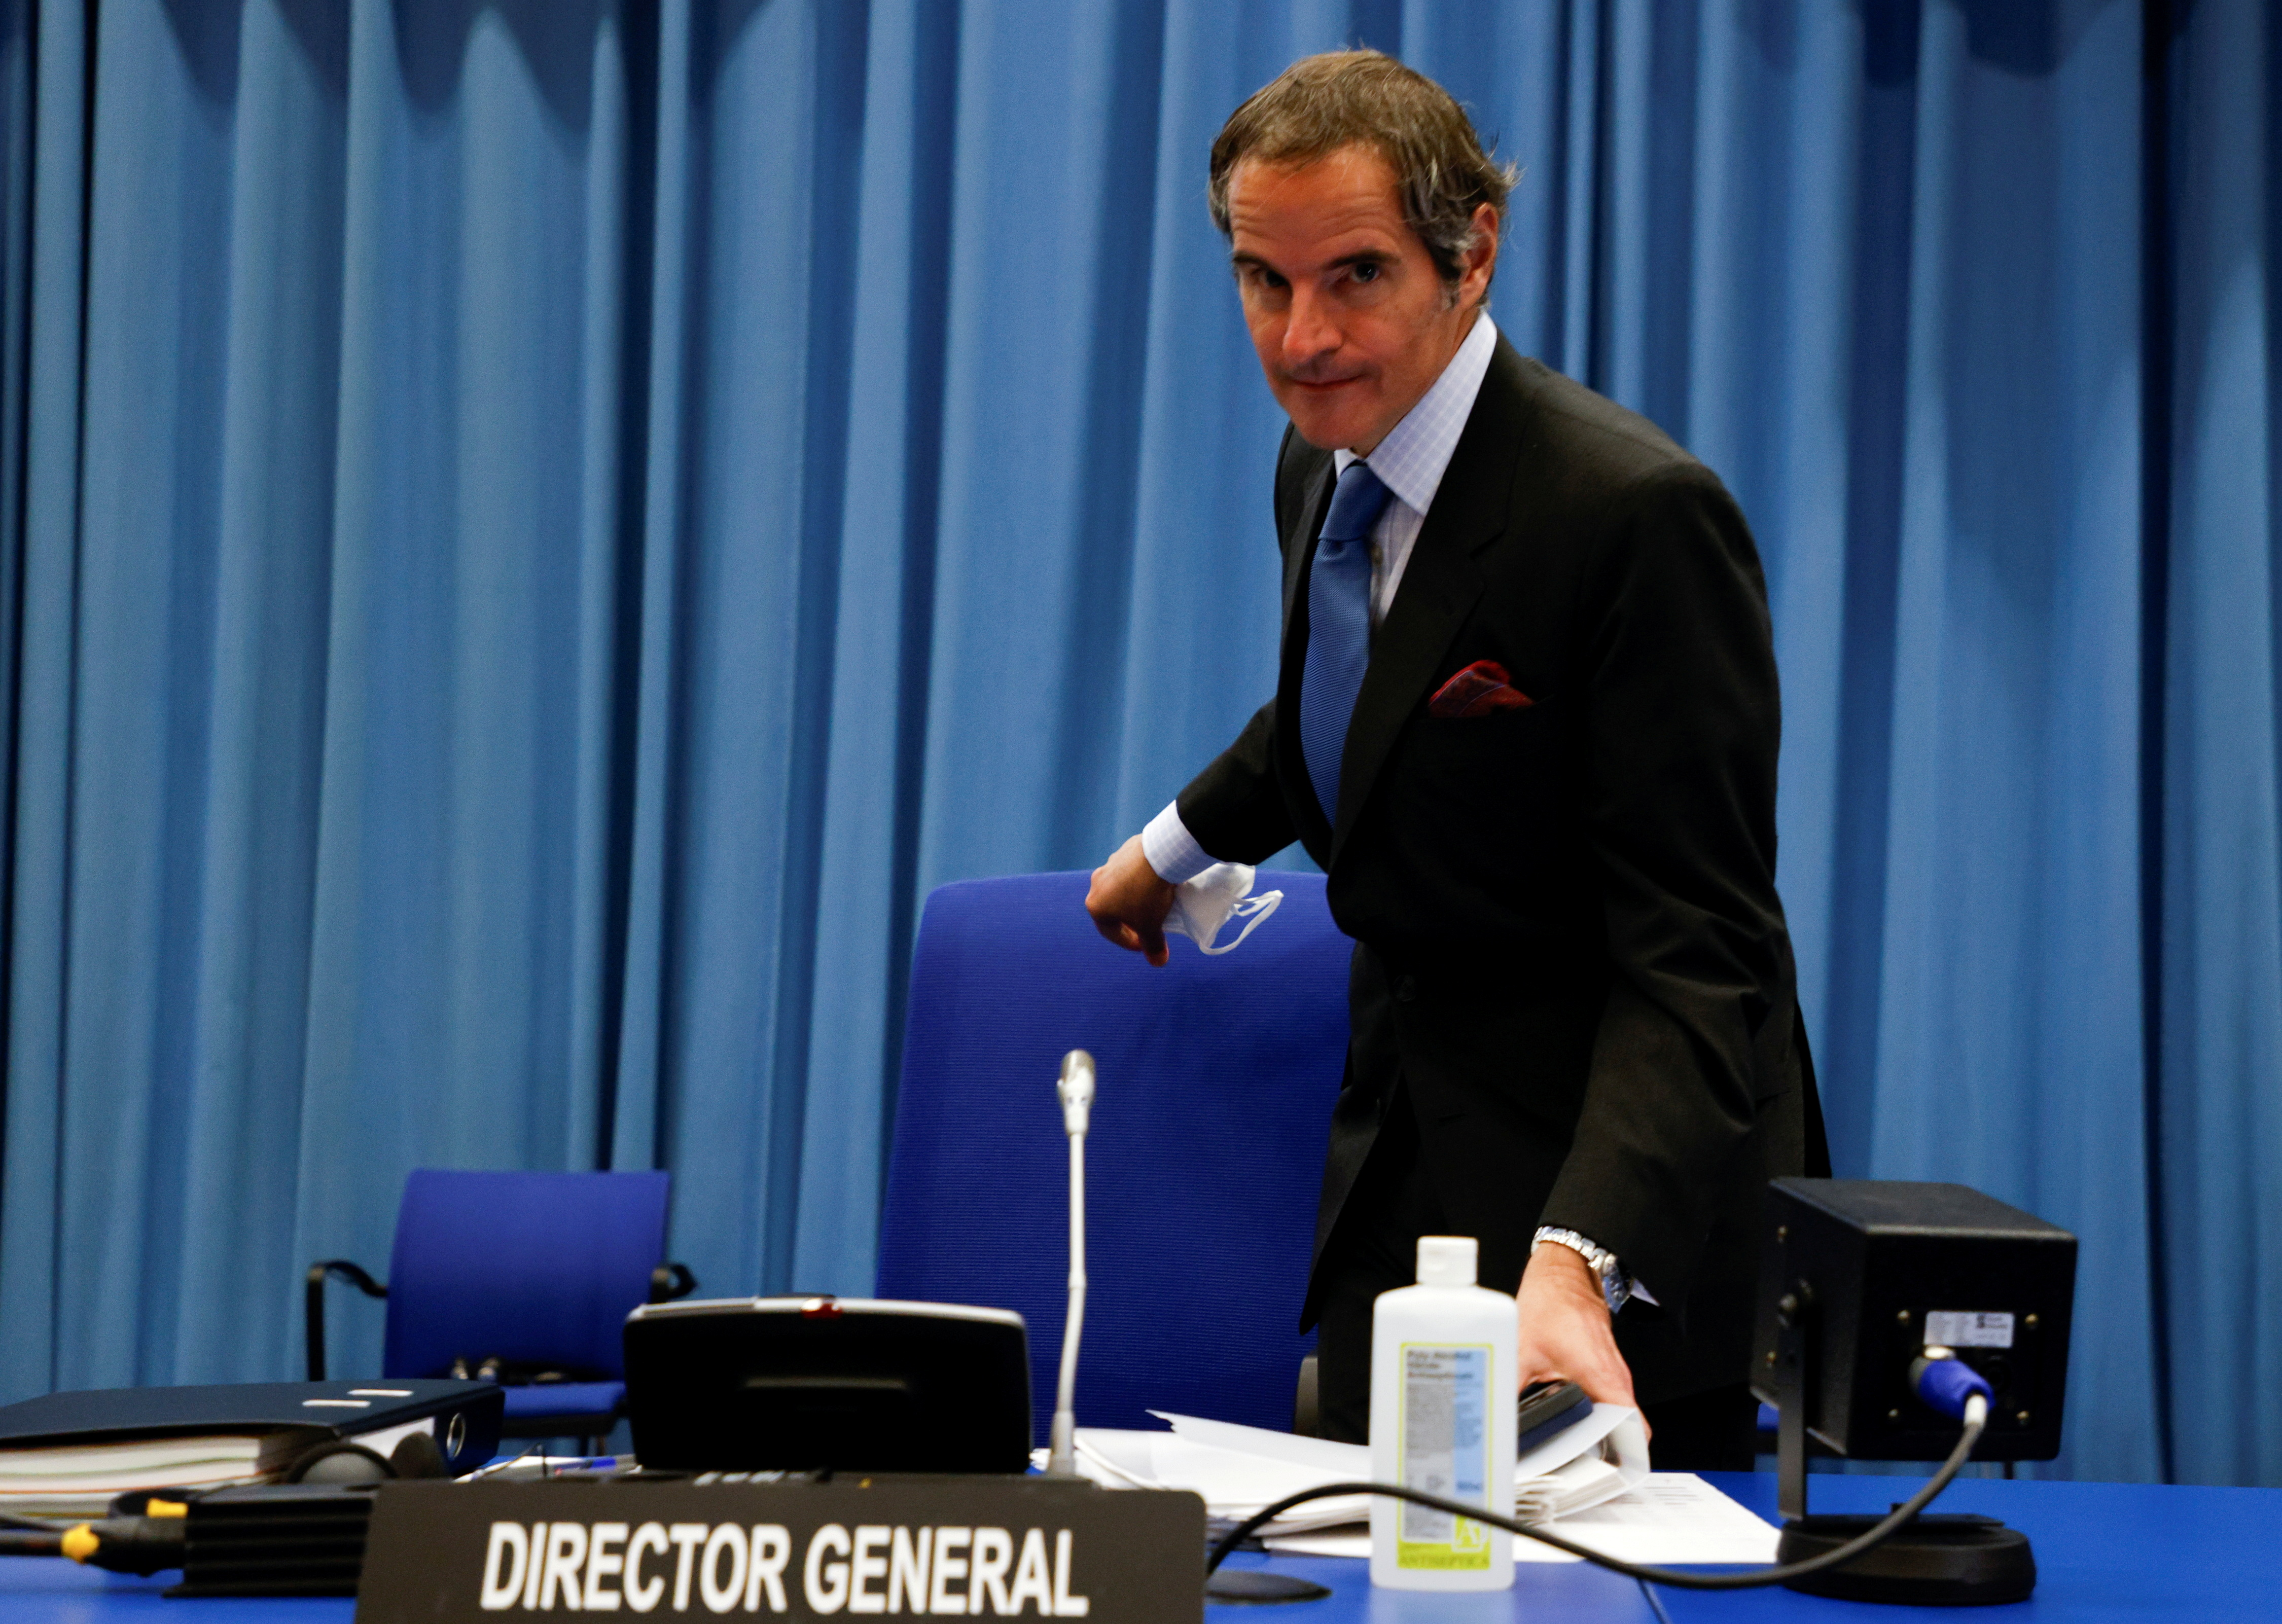 International Atomic Energy Agency Director General Rafael Grossi arrives for the beginning of an IAEA board of governors meeting in Vienna, Austria, June 7, 2021.  REUTERS/Leonhard Foeger